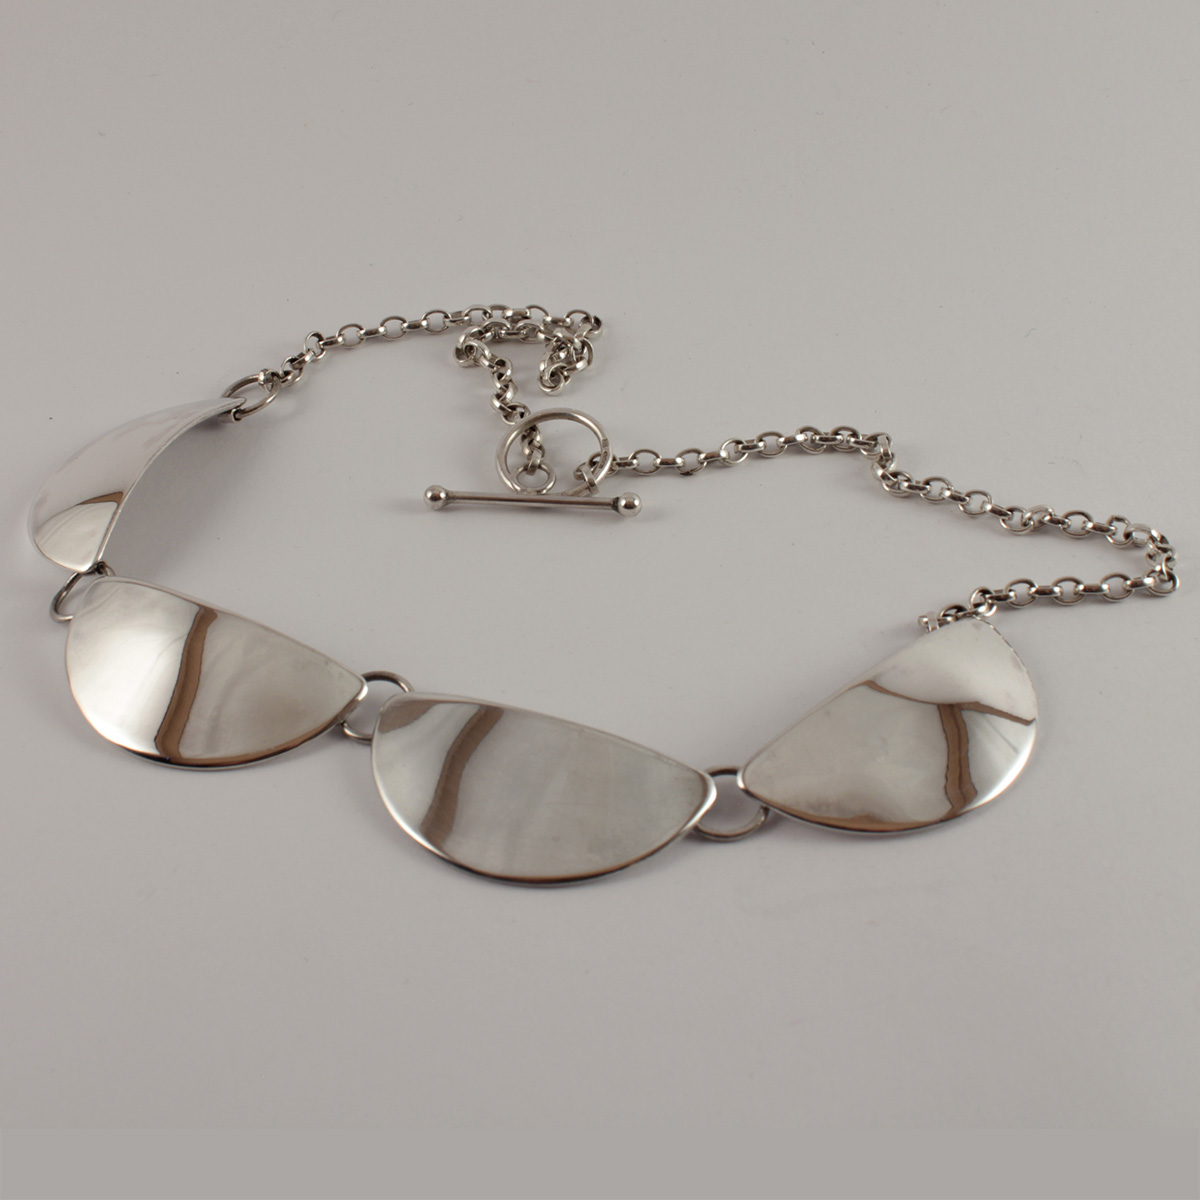 Heavy Sterling Silver Necklace